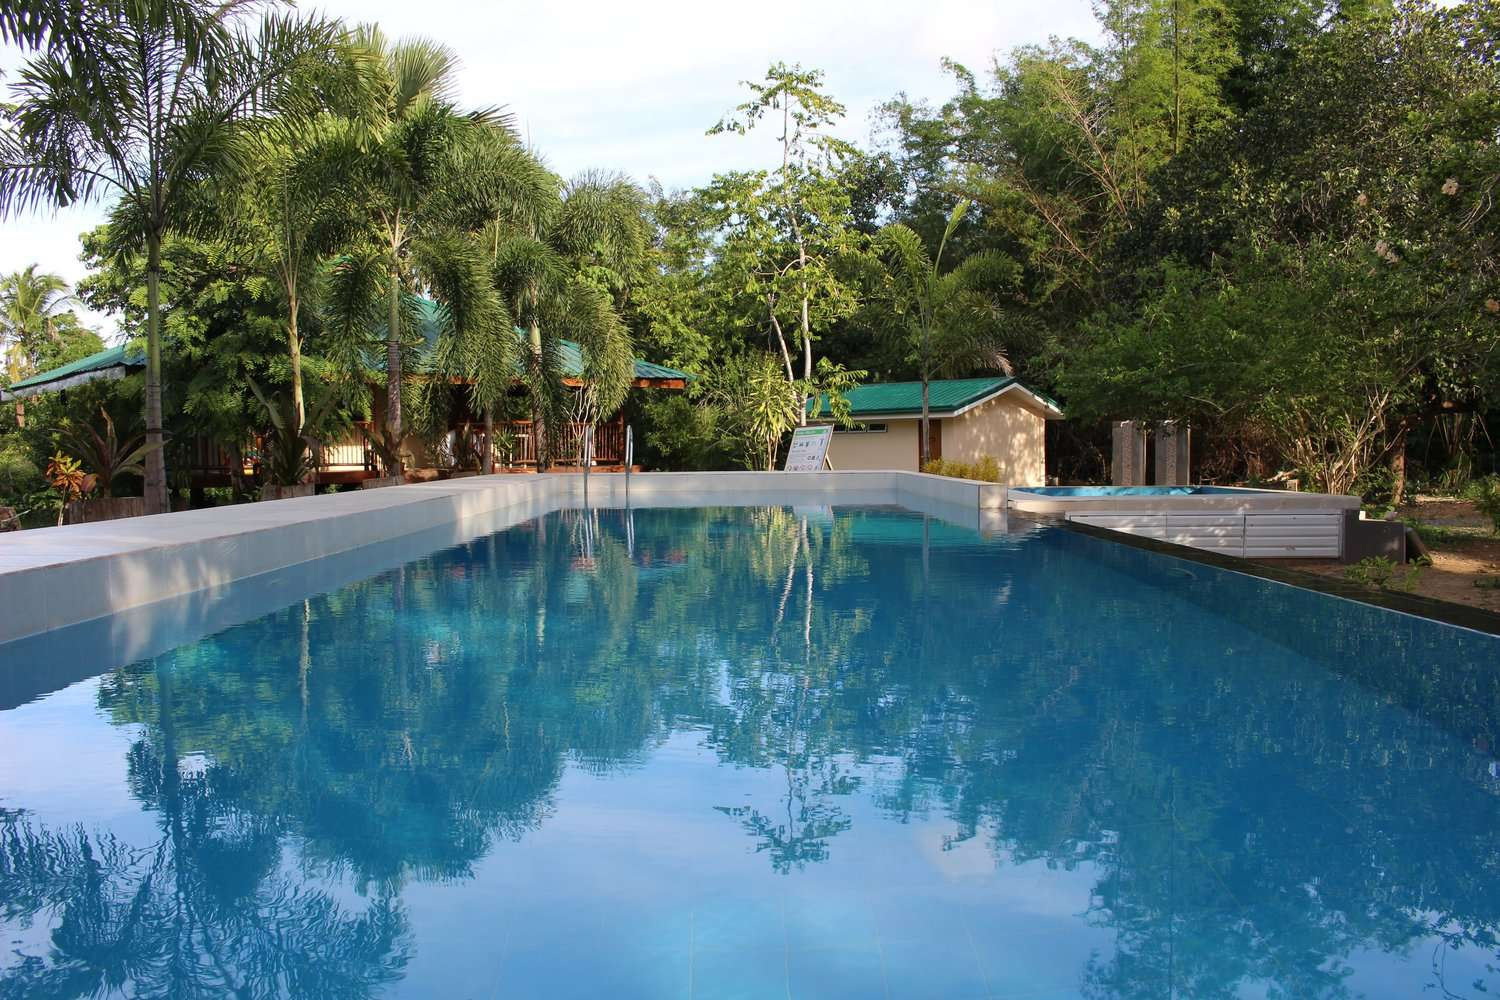 swimming pool surrounded by trees at Casa Fidelis, Coron